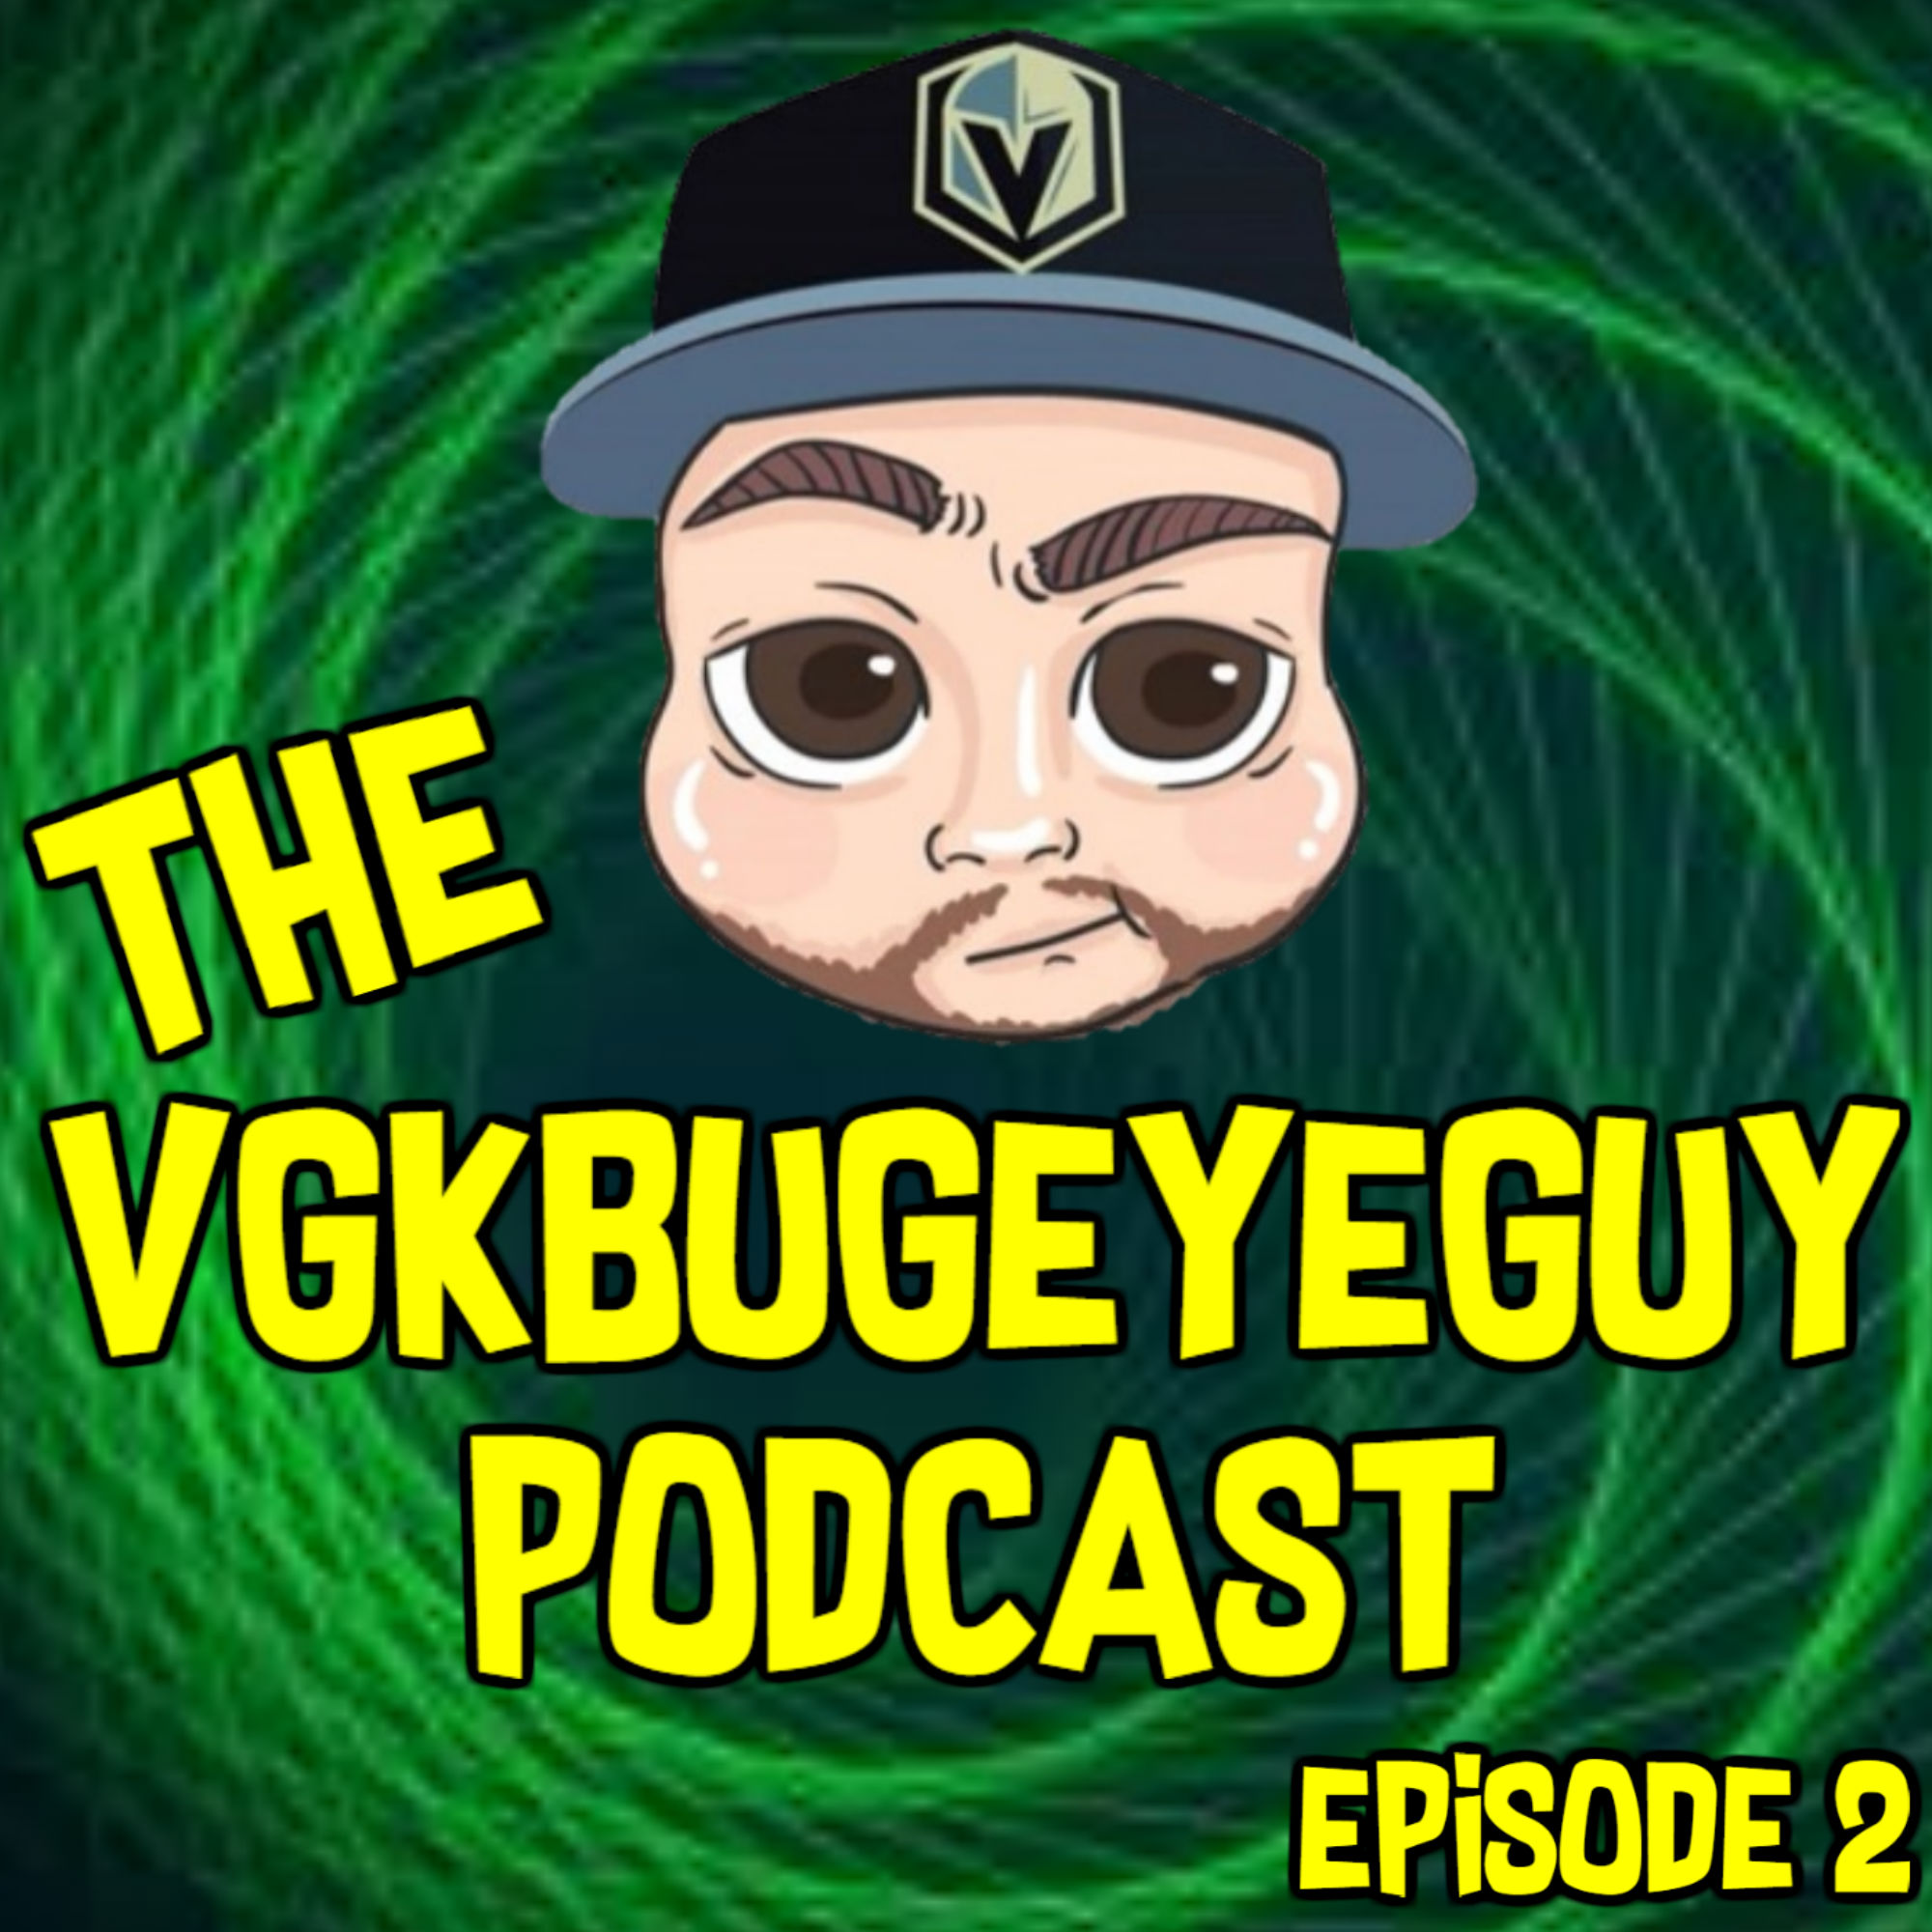 The VGKbugeyeGuy Podcast  Episode 2